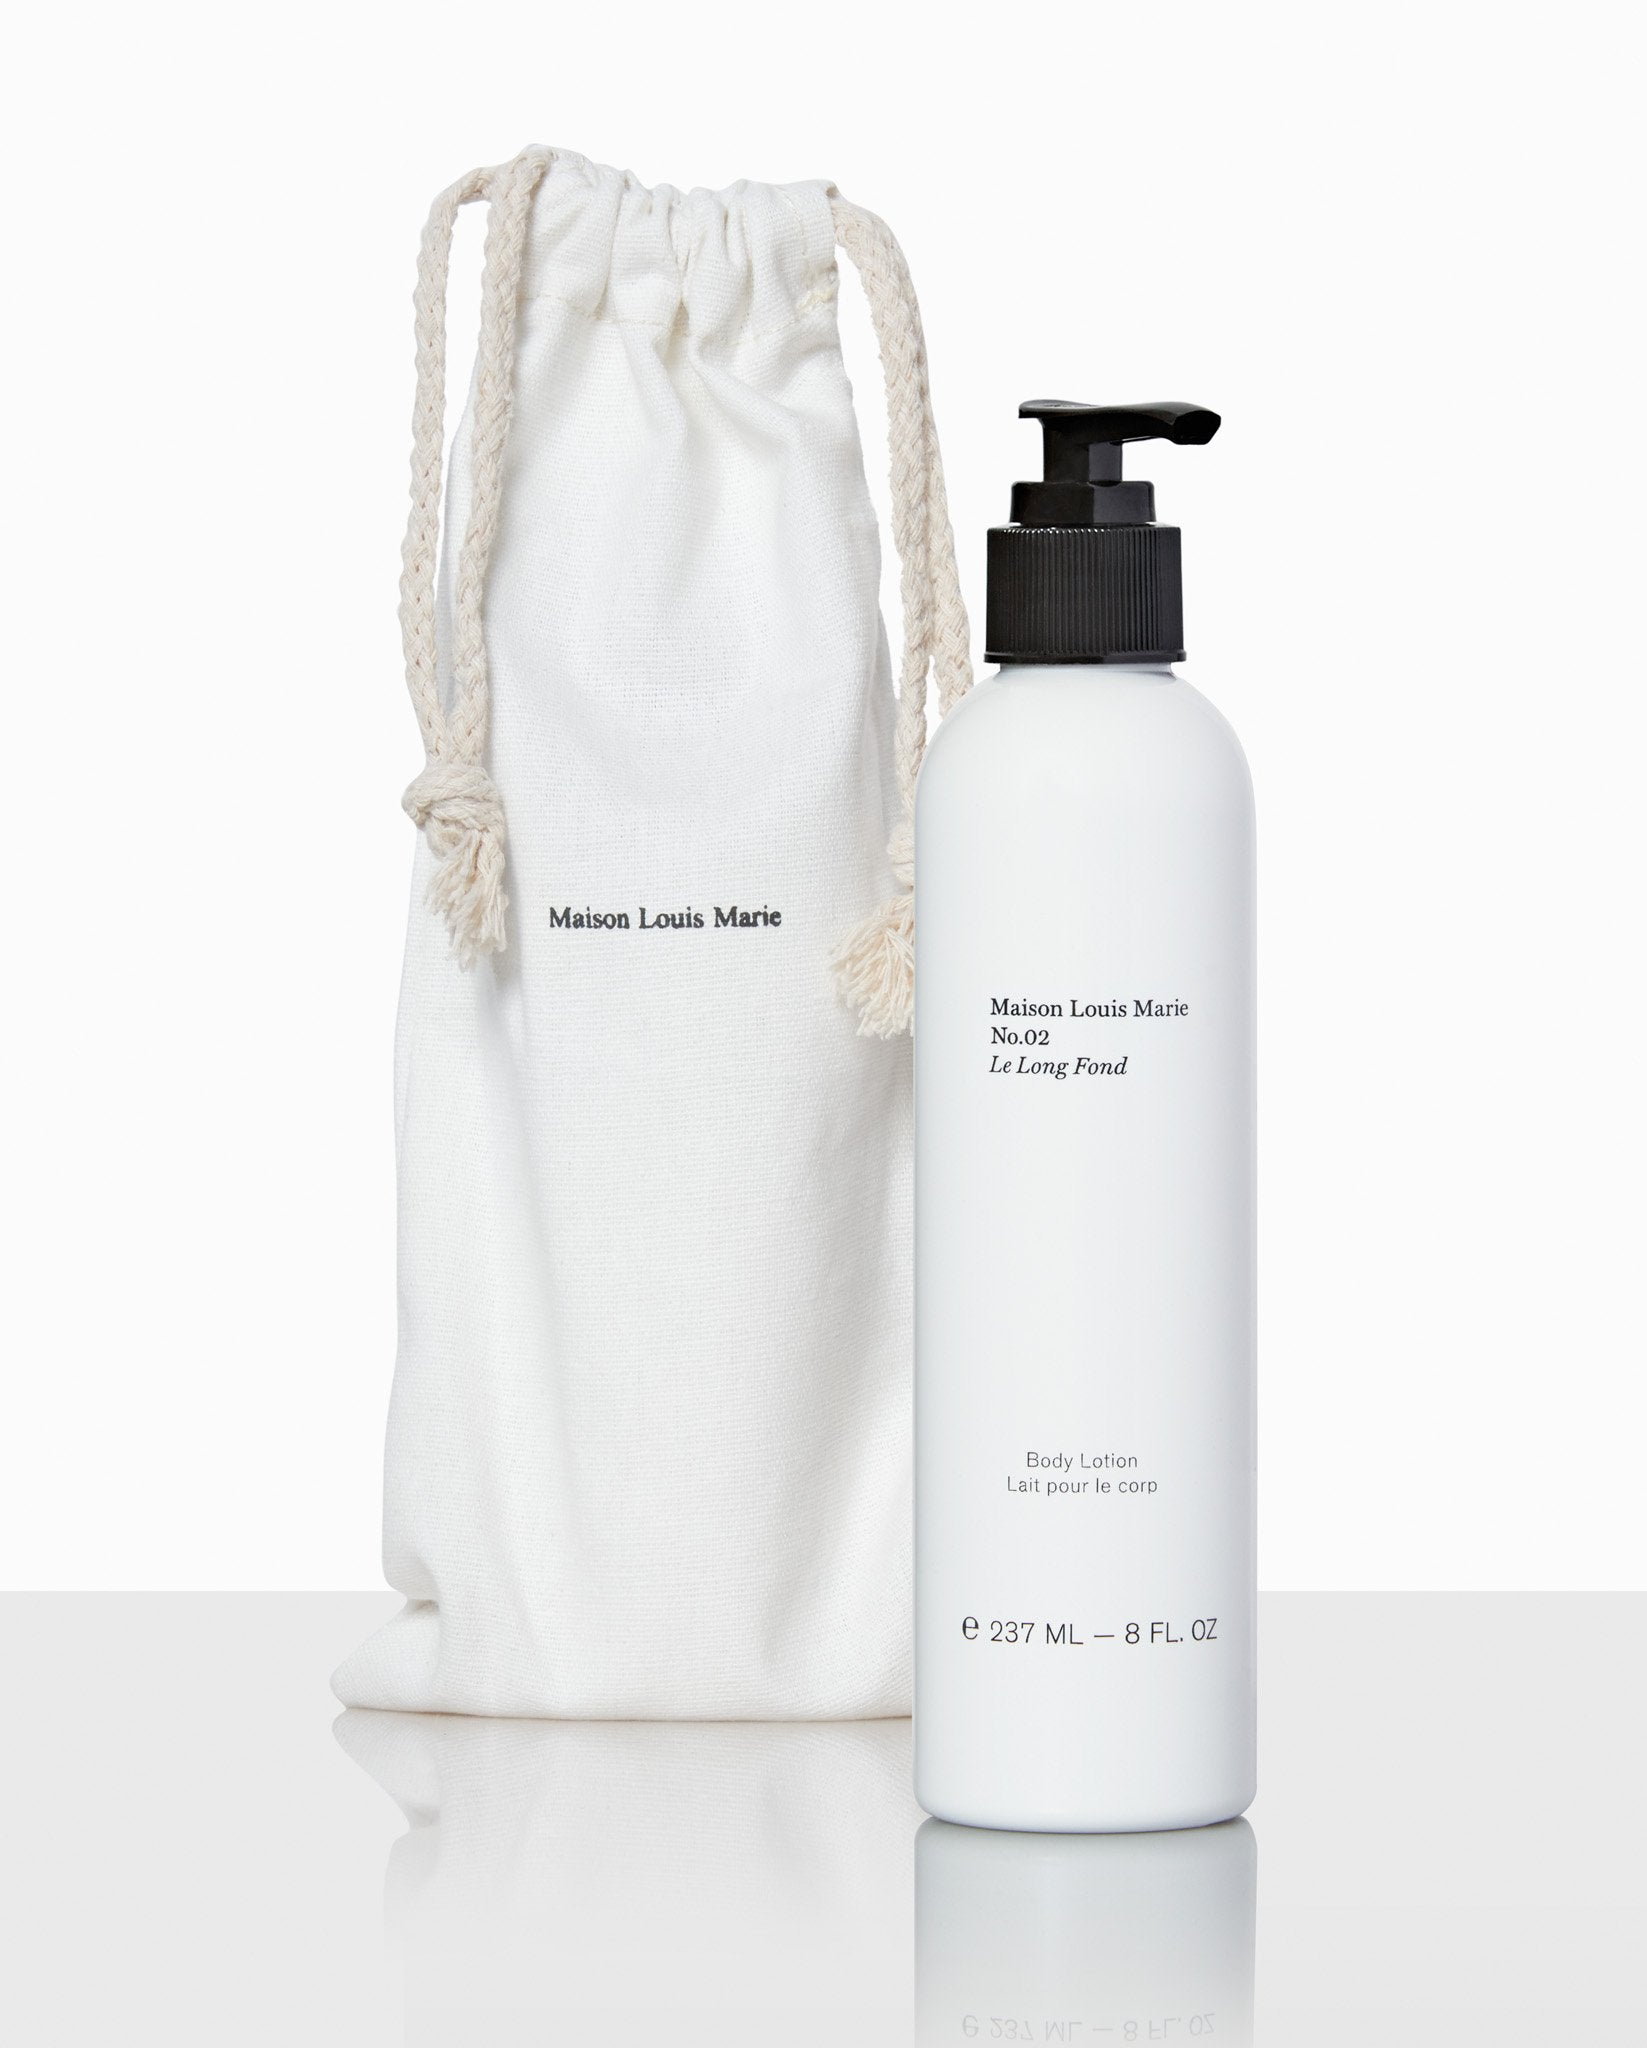 No.02 Le Long Fond - Body lotion 237ml, Cosmetic, Maison Louis Marie, SUPERCONSCIOUS BERLIN- SUPERCONSCIOUS BERLIN